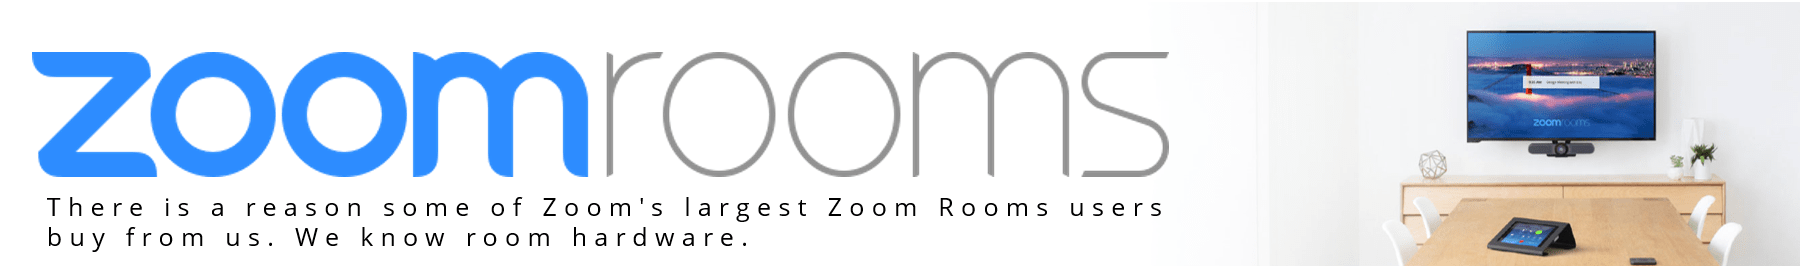 Crestron Zoom Rooms Kit available